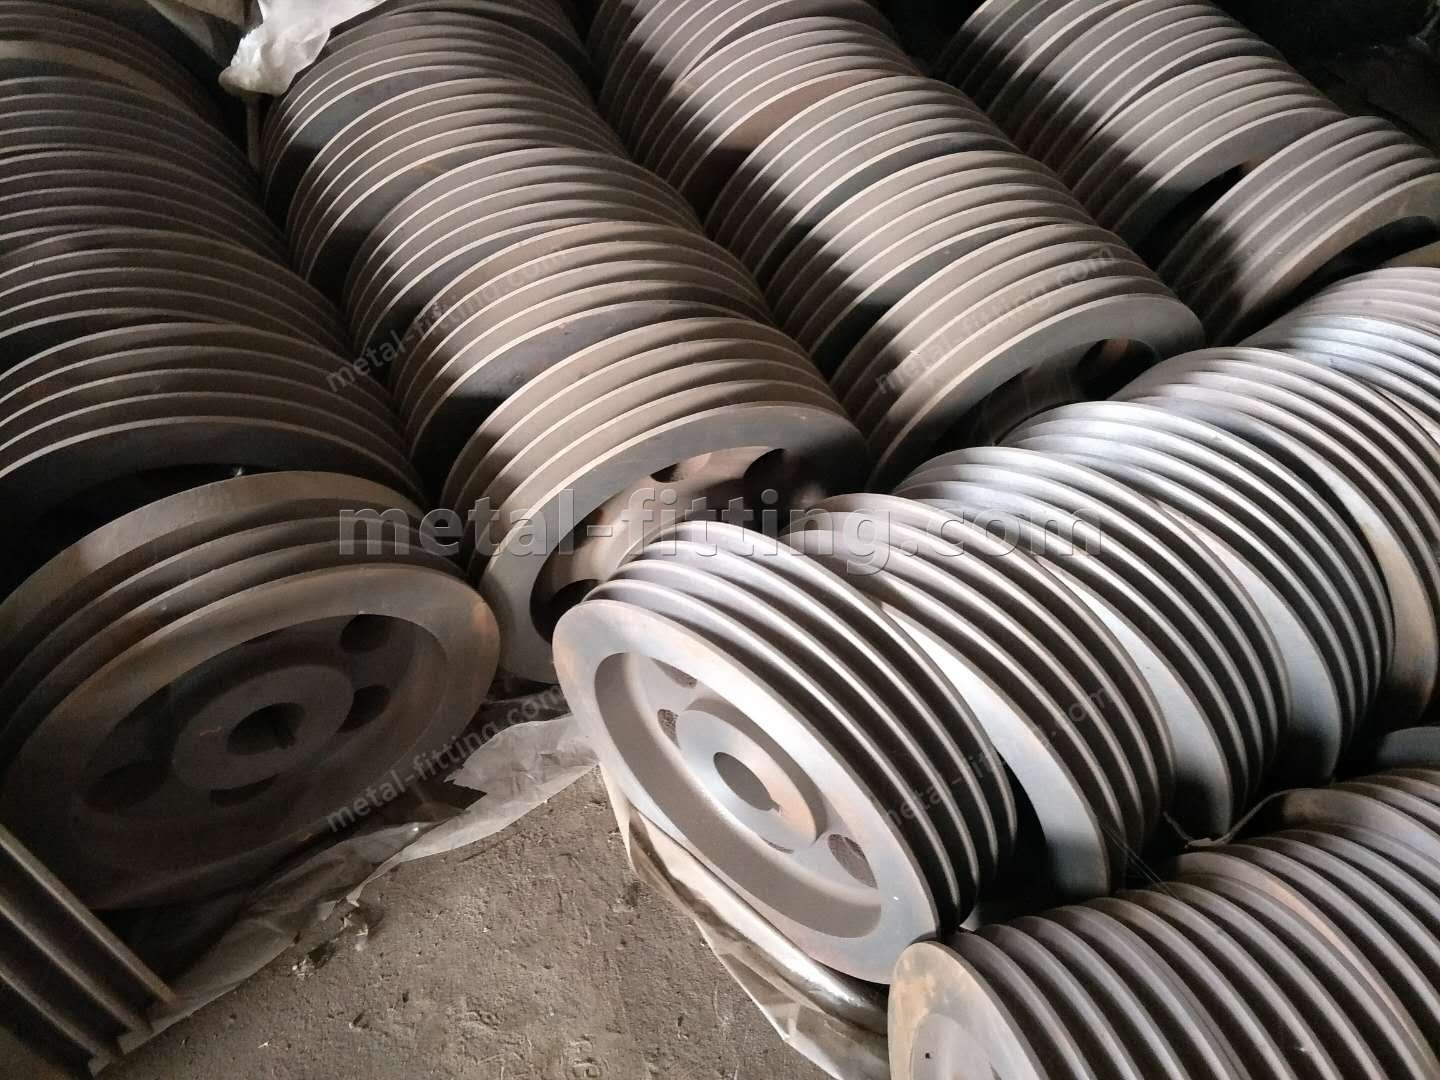 pully,cast iron pully,iron gear ring for concrete mixer-667832459553261157